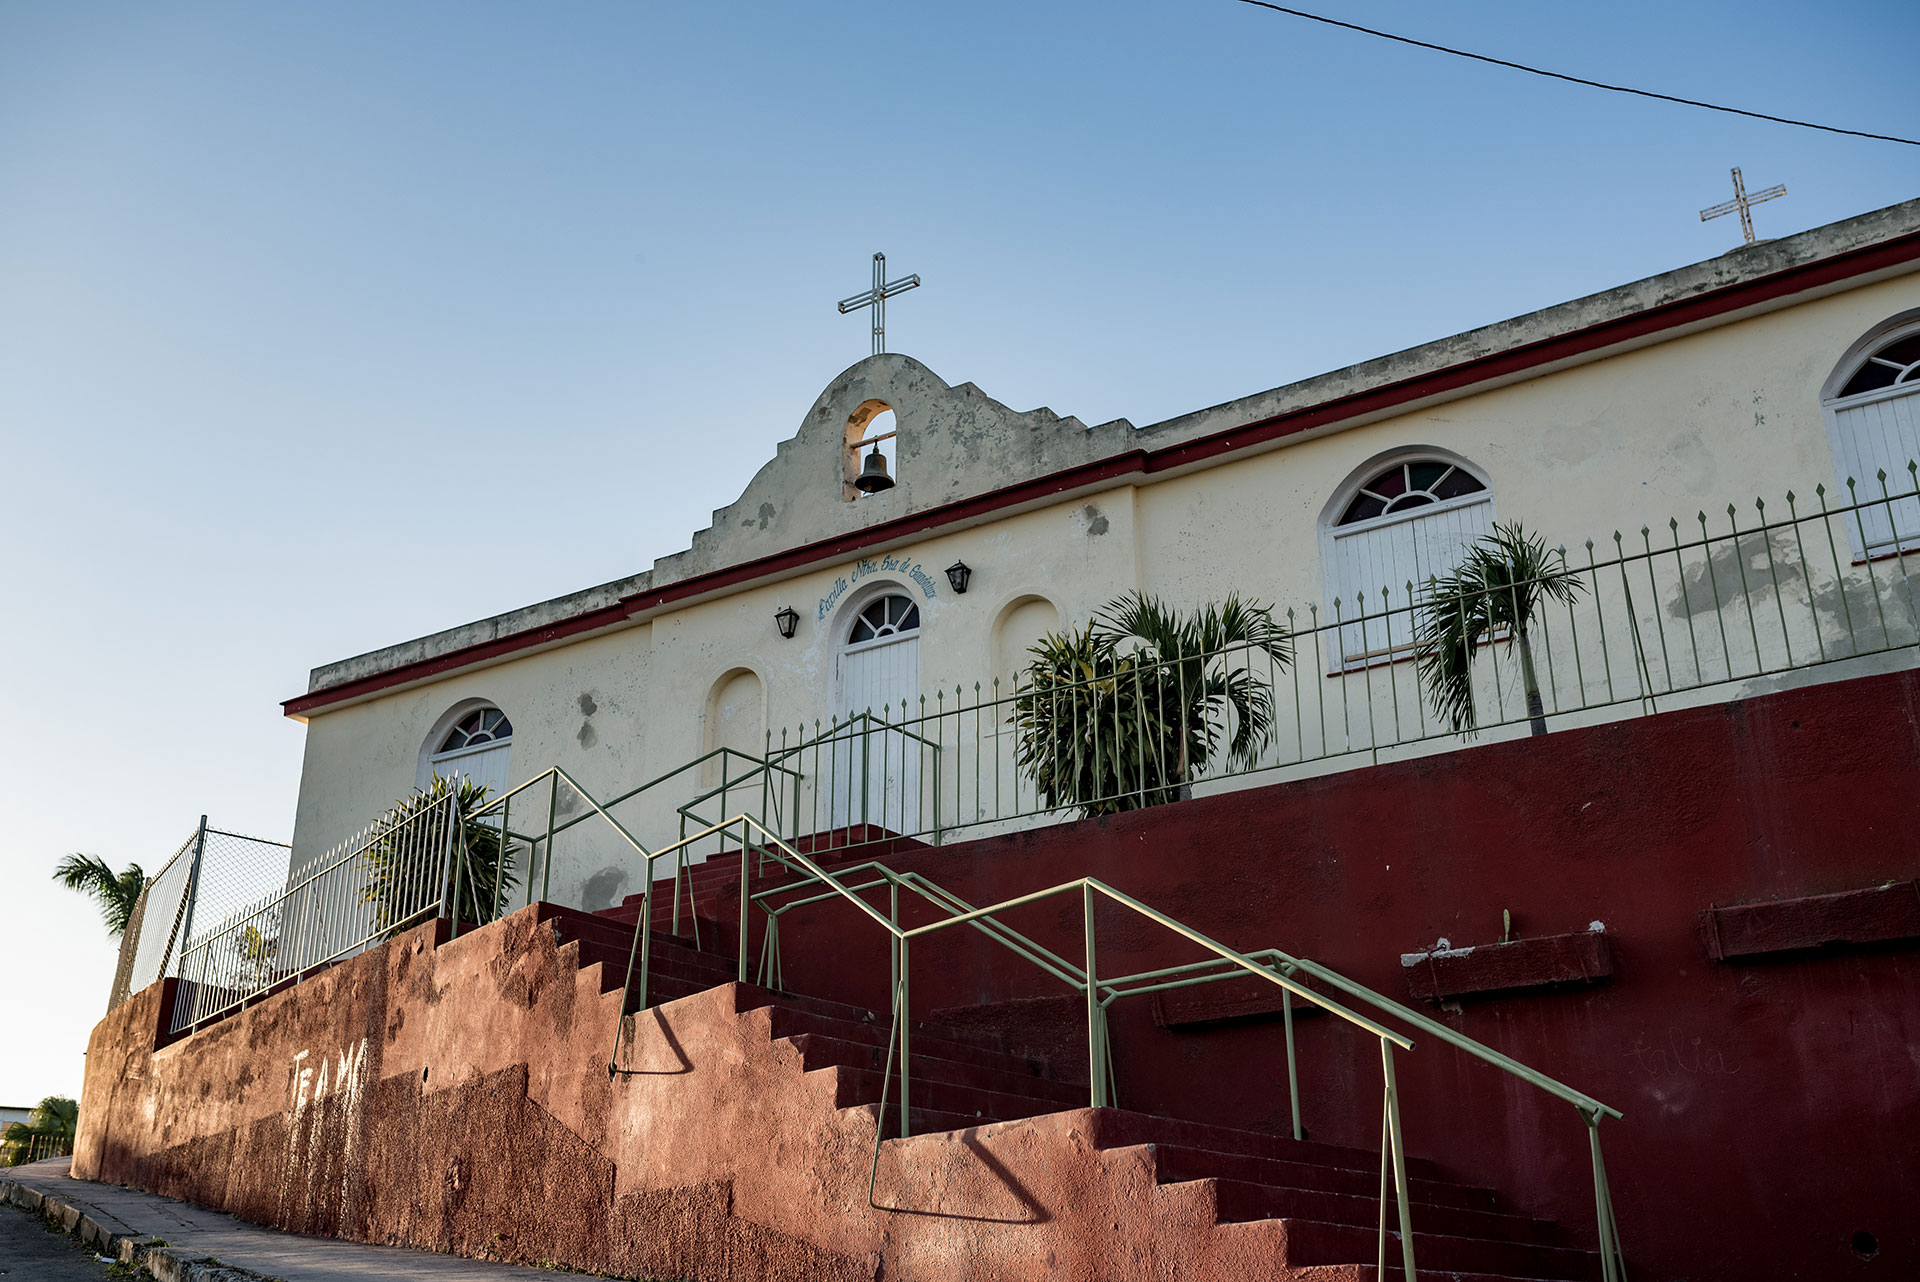 The church Hermanas del Amor de Dios is pictured March 7, 2019, in the Regla neighborhood of Havana, Cuba. The church received aid from Caritas Cubana after a tornado recently devastated the community. (Photo by Daniel Hentz)